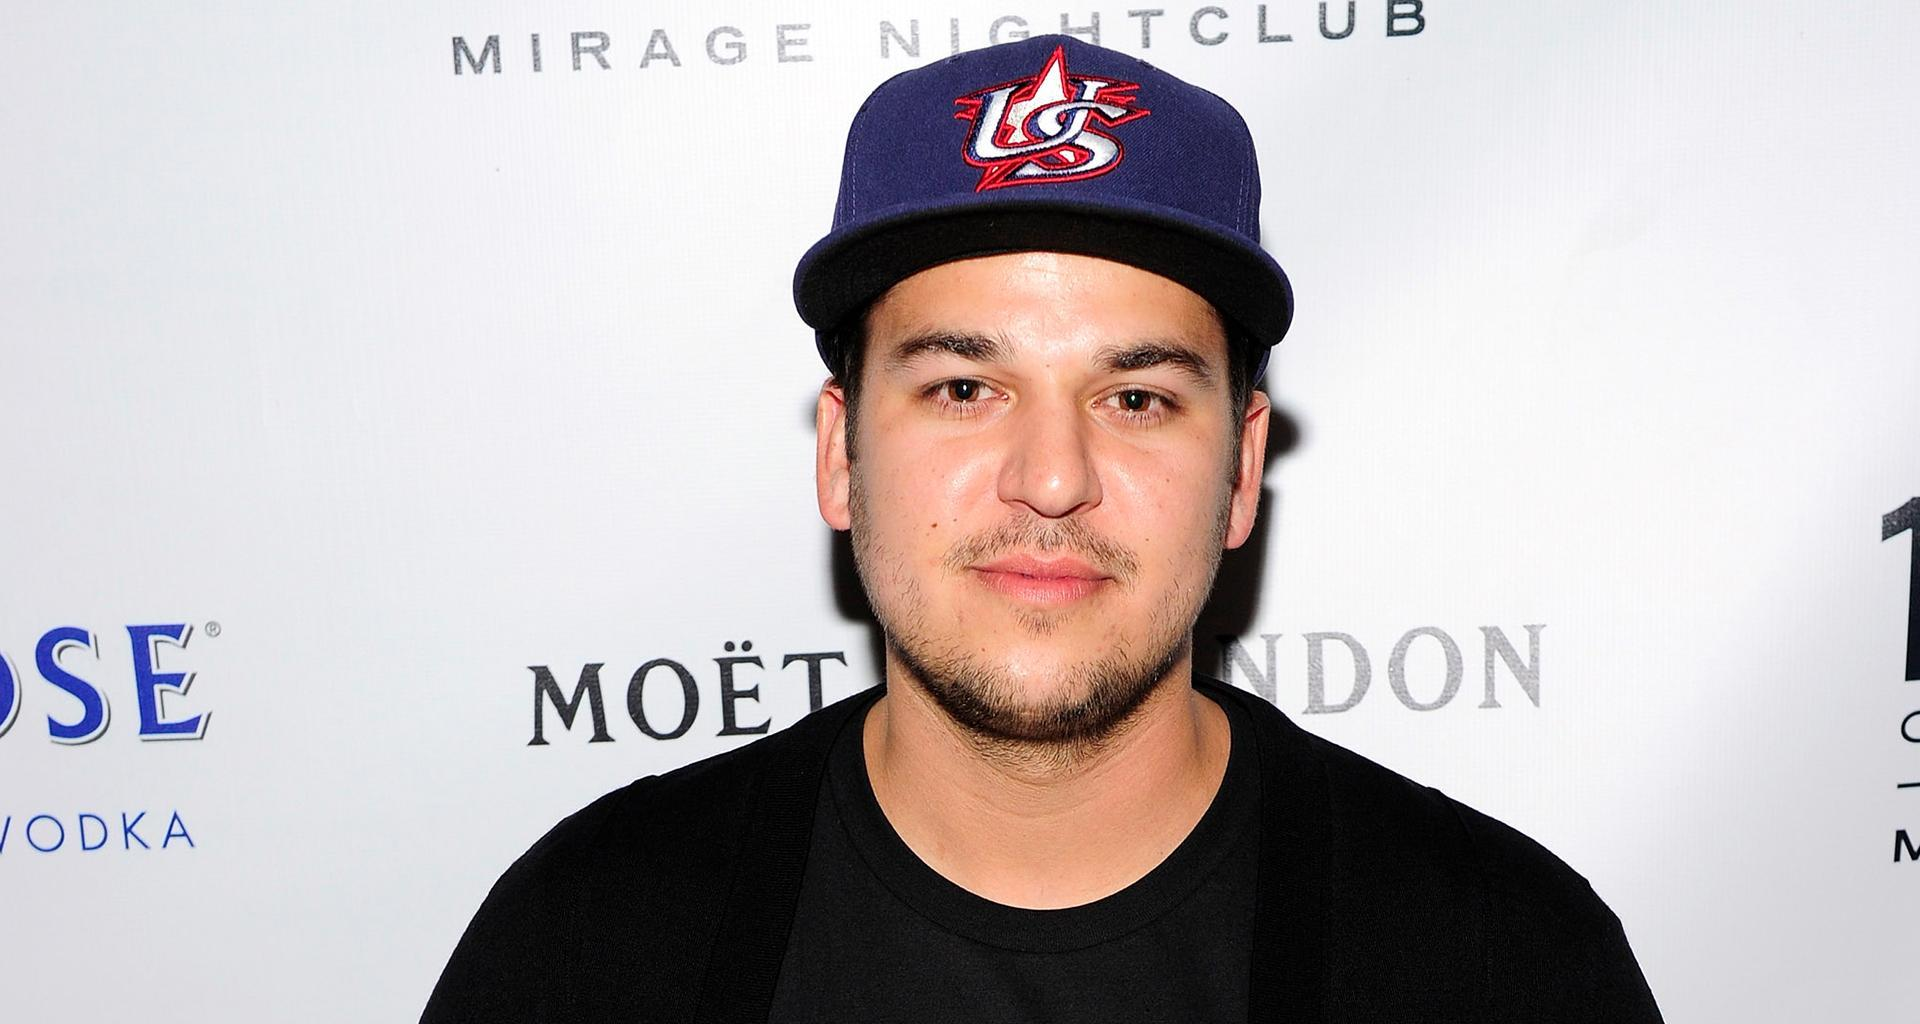 KUWK: Rob Kardashian Reportedly Dating Once Again - Has He Introduced Daughter Dream To Anyone Yet?